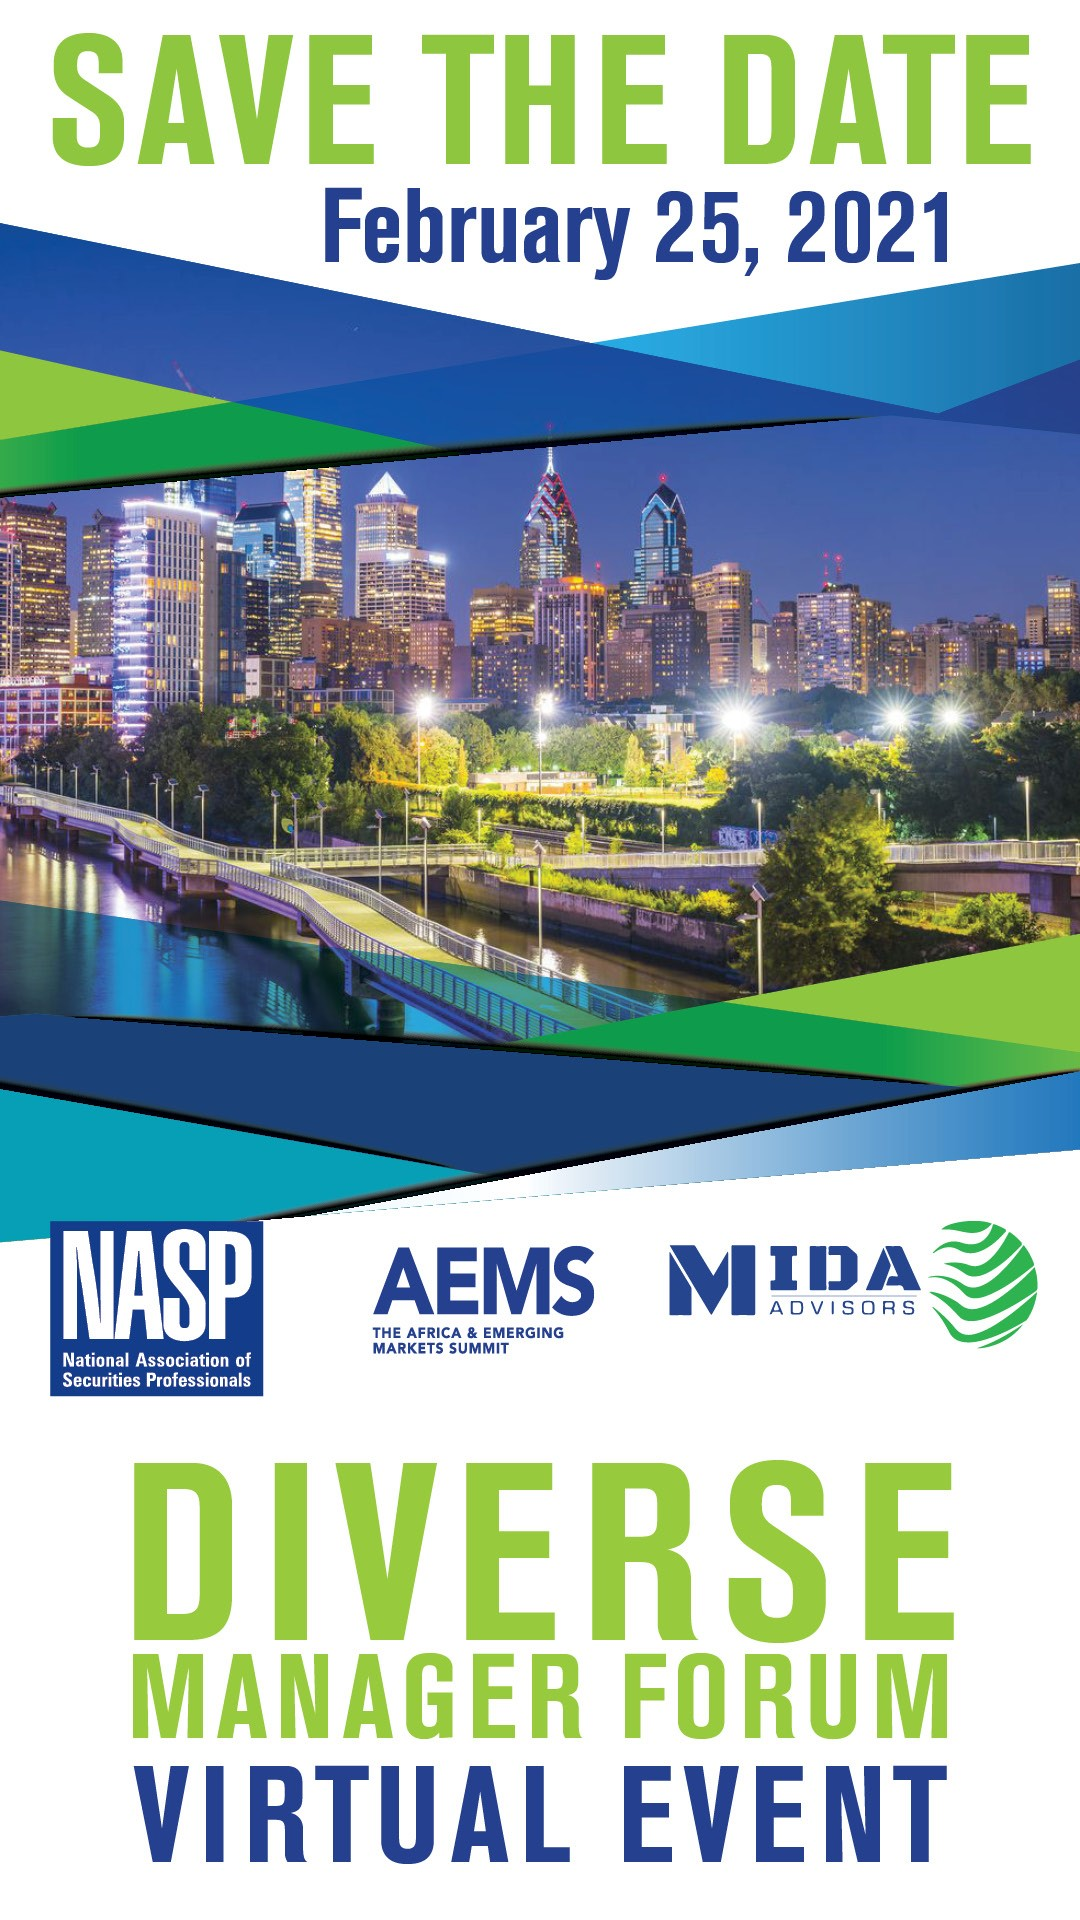 Diverse Manager Forum Save the Date February 25, 2021